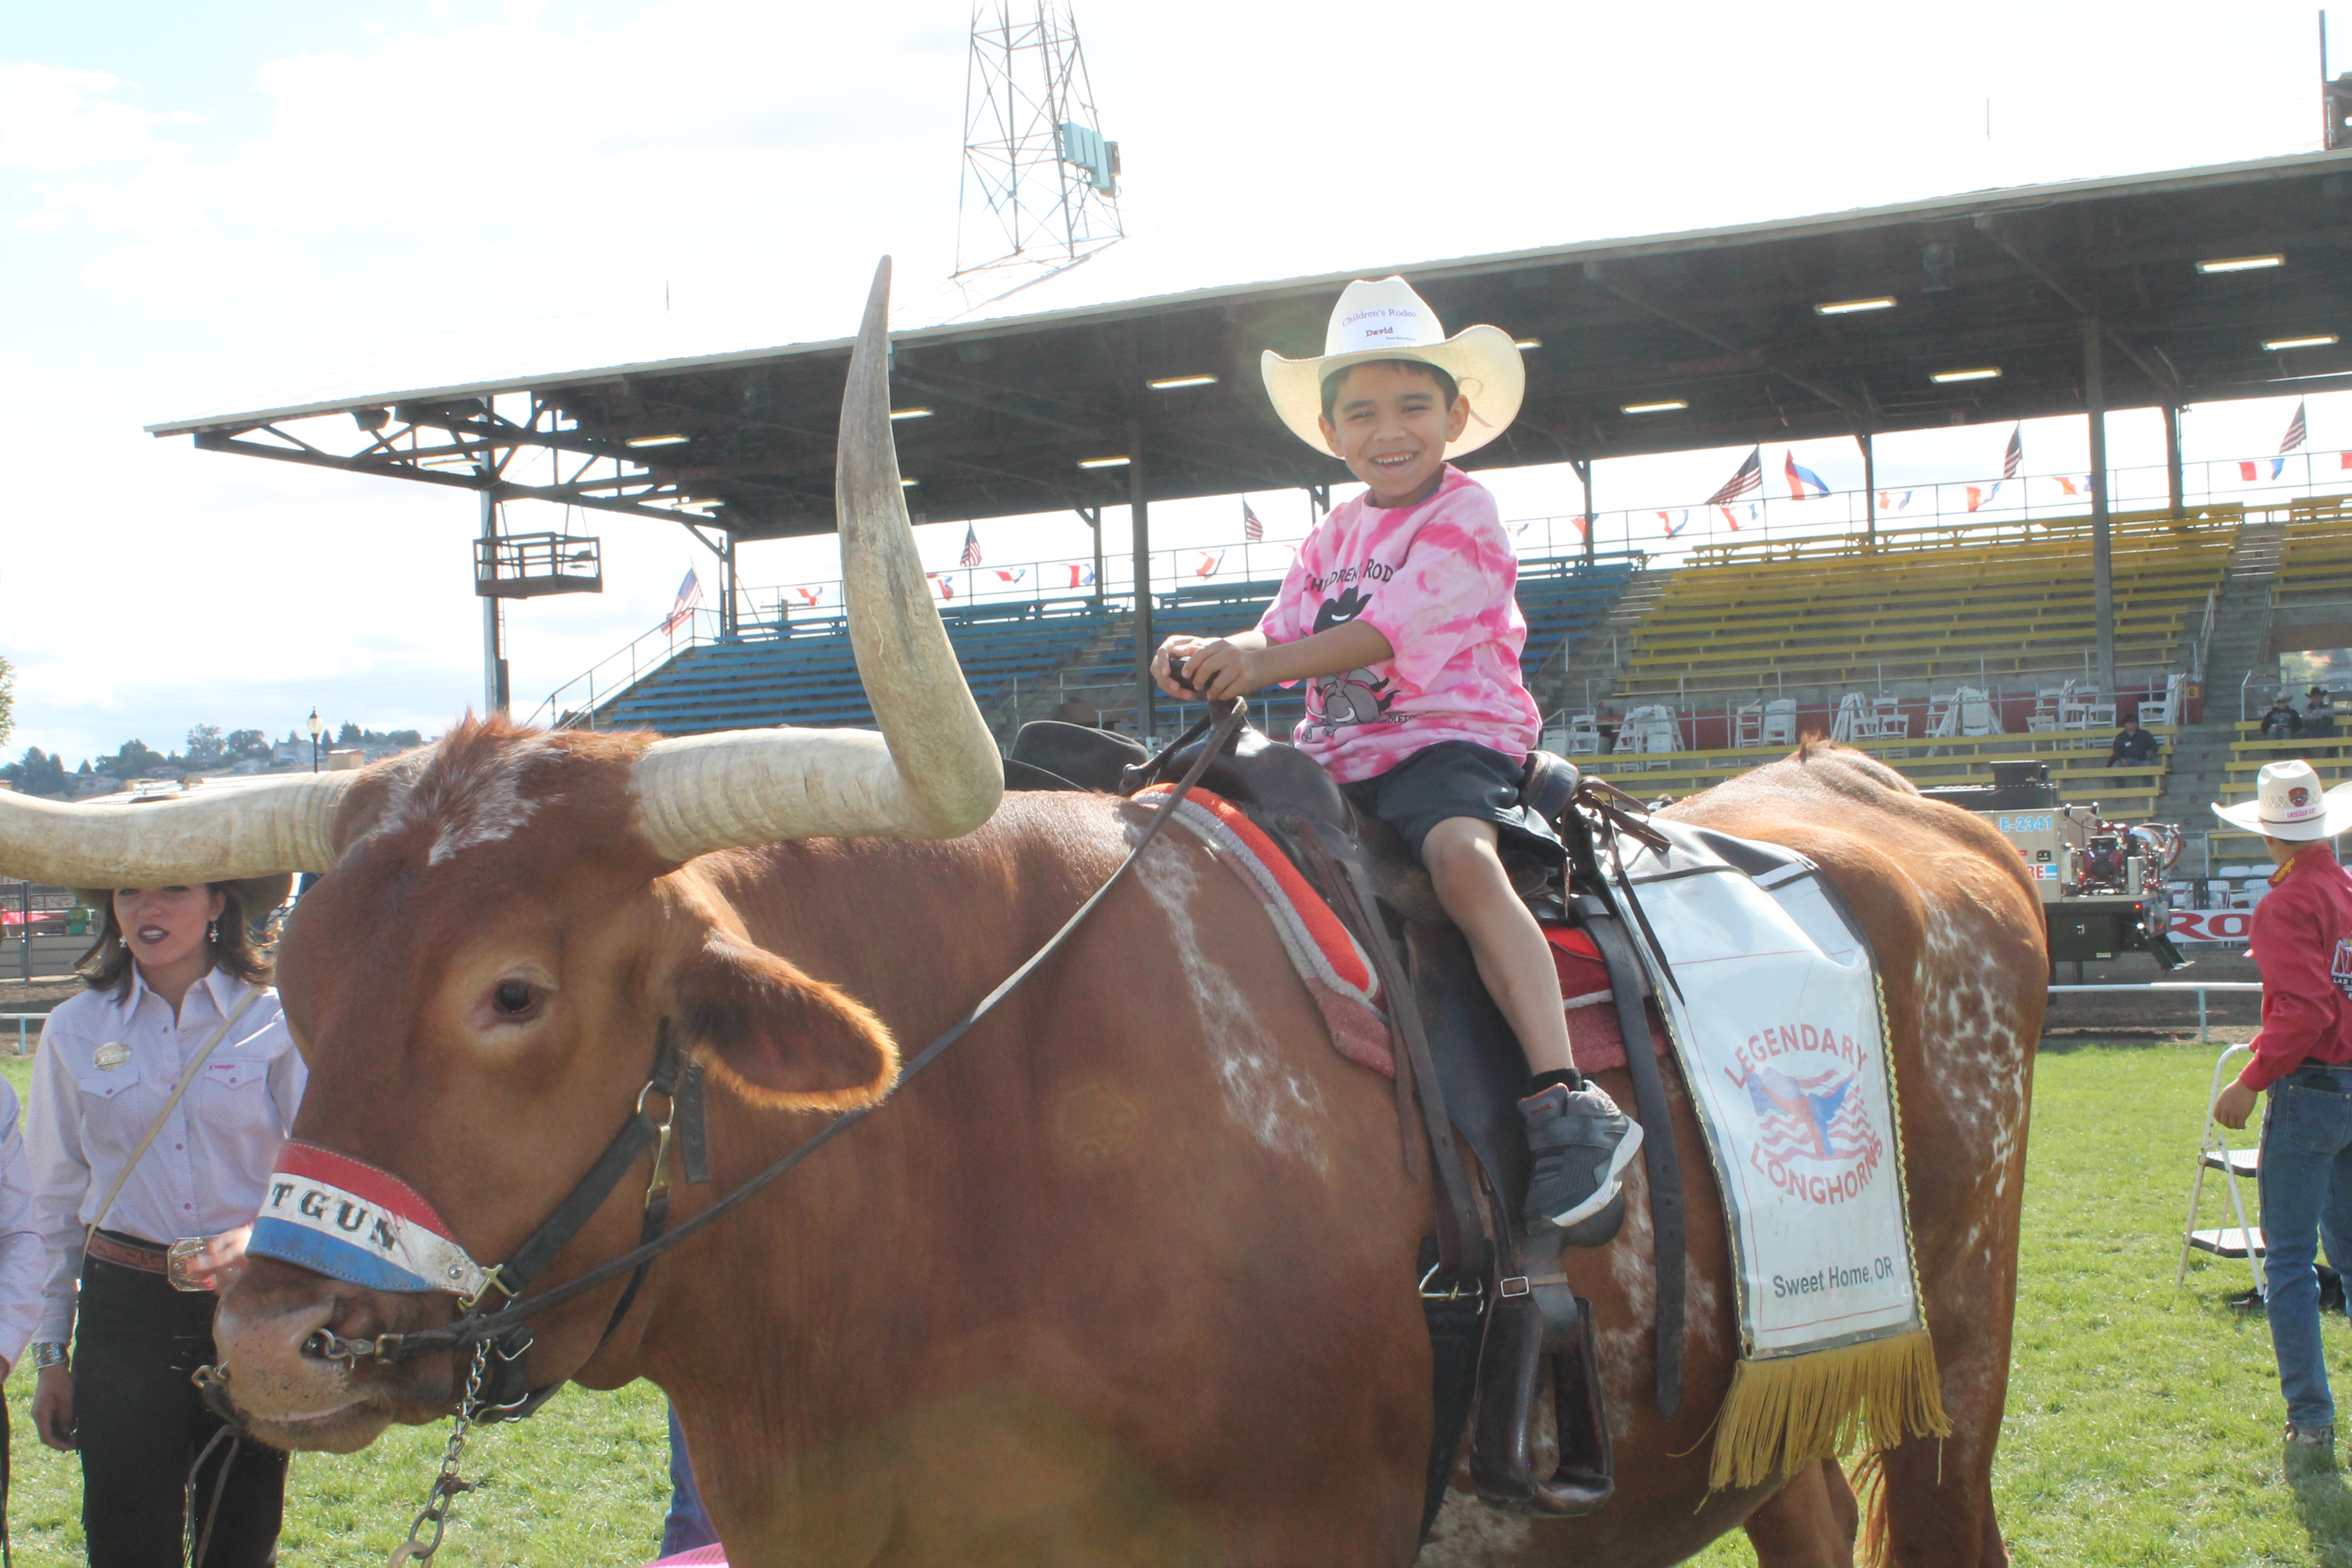 A photo of a kid riding a longhorn.